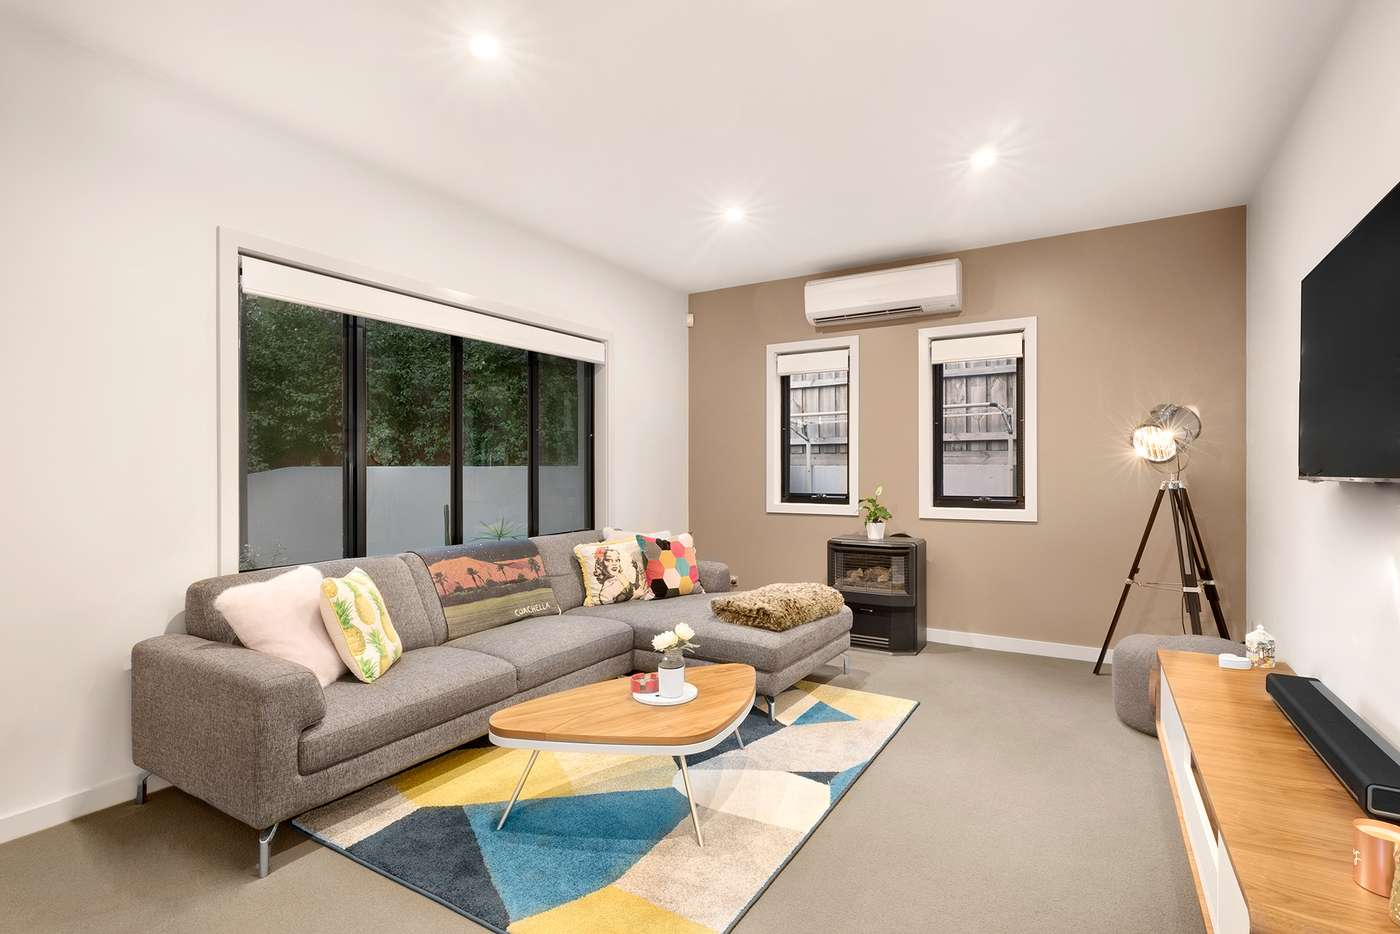 Fifth view of Homely house listing, Unit 6/15 Karingal Drive, Montmorency VIC 3094